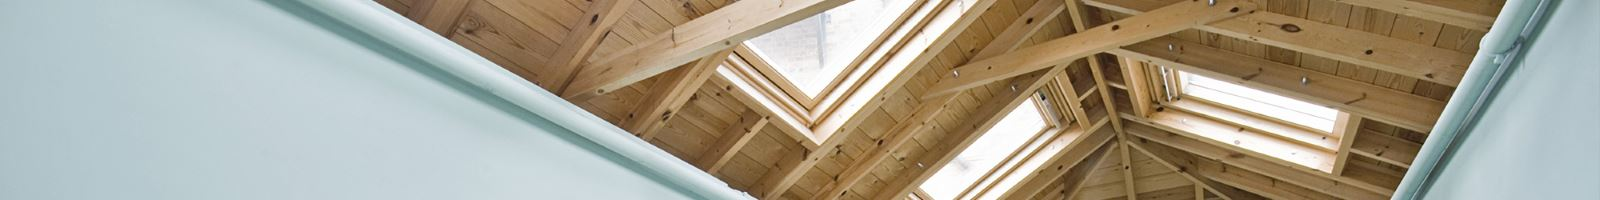 loft conversion wooden roof with velux windows